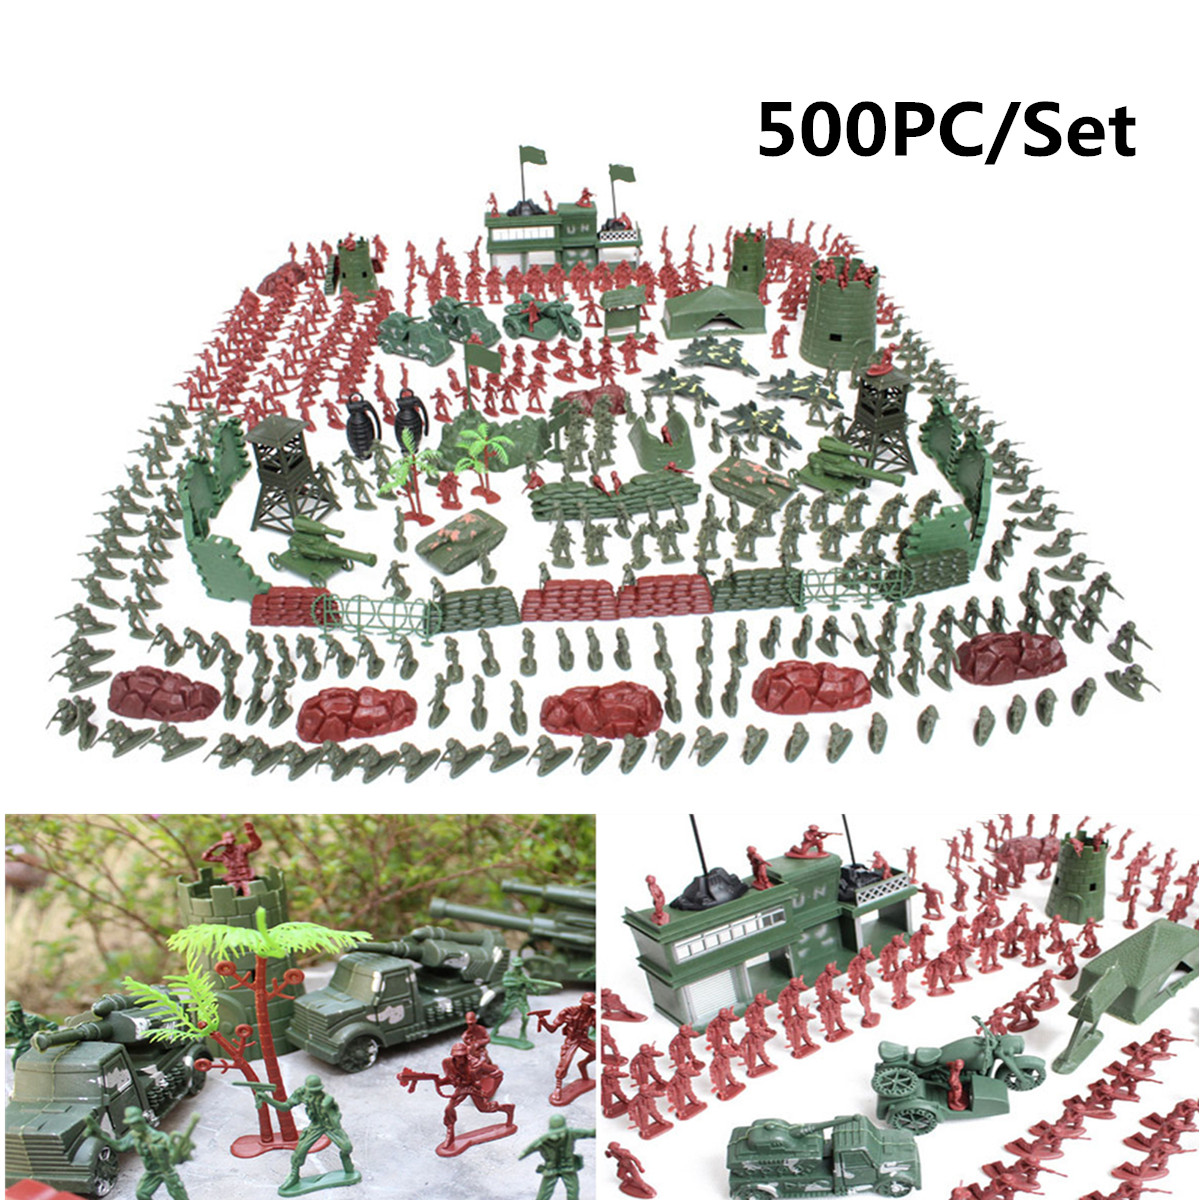 Plastic Soldier Model-Toy Figures Playset-Toys Gift Military Army Men Kids Boys Children